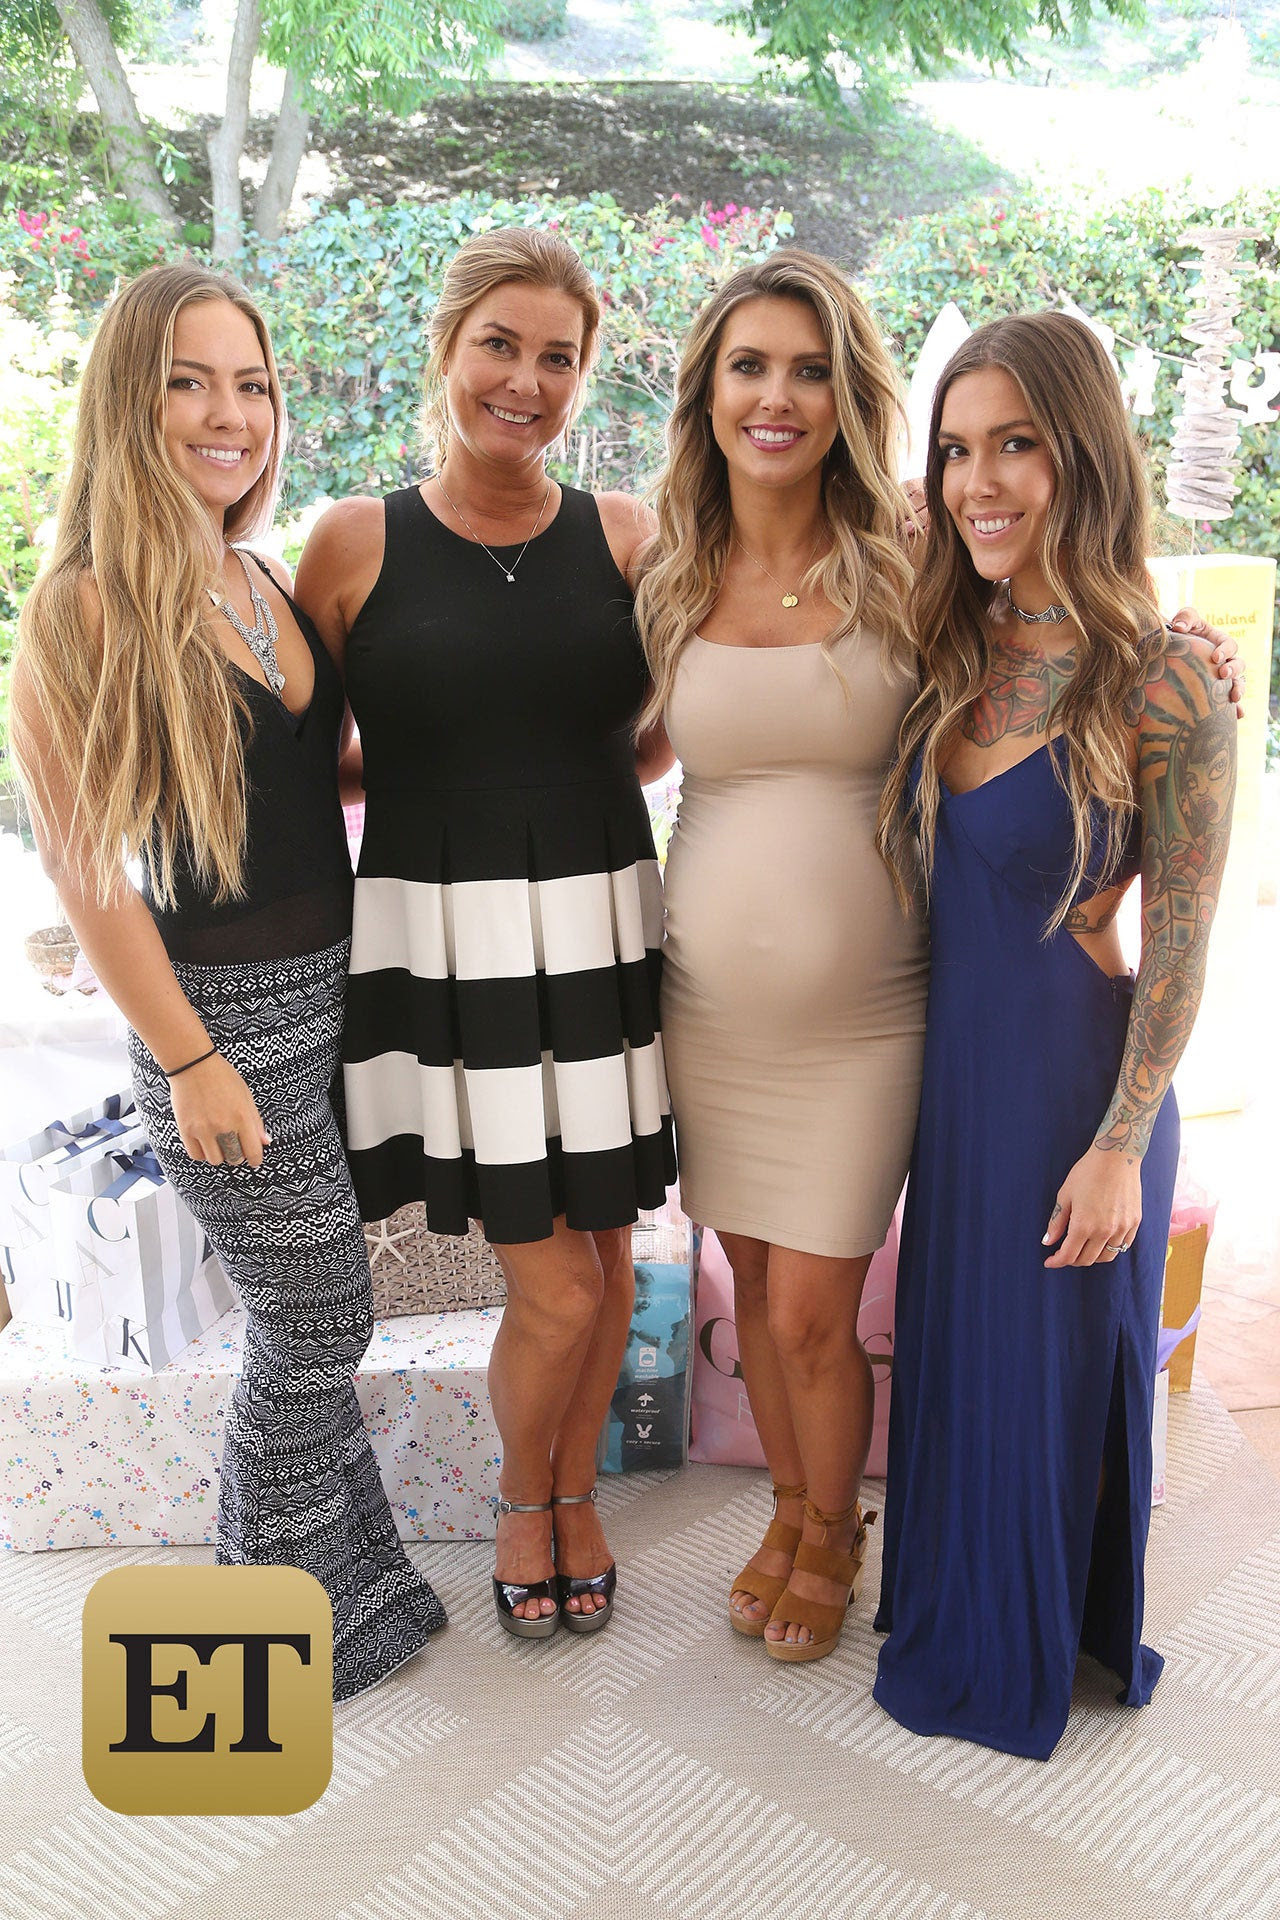 Baby Shower Guest Outfit Ideas Fall : shower, guest, outfit, ideas, Shower, Outfit, Ideas, Guests, Viewer